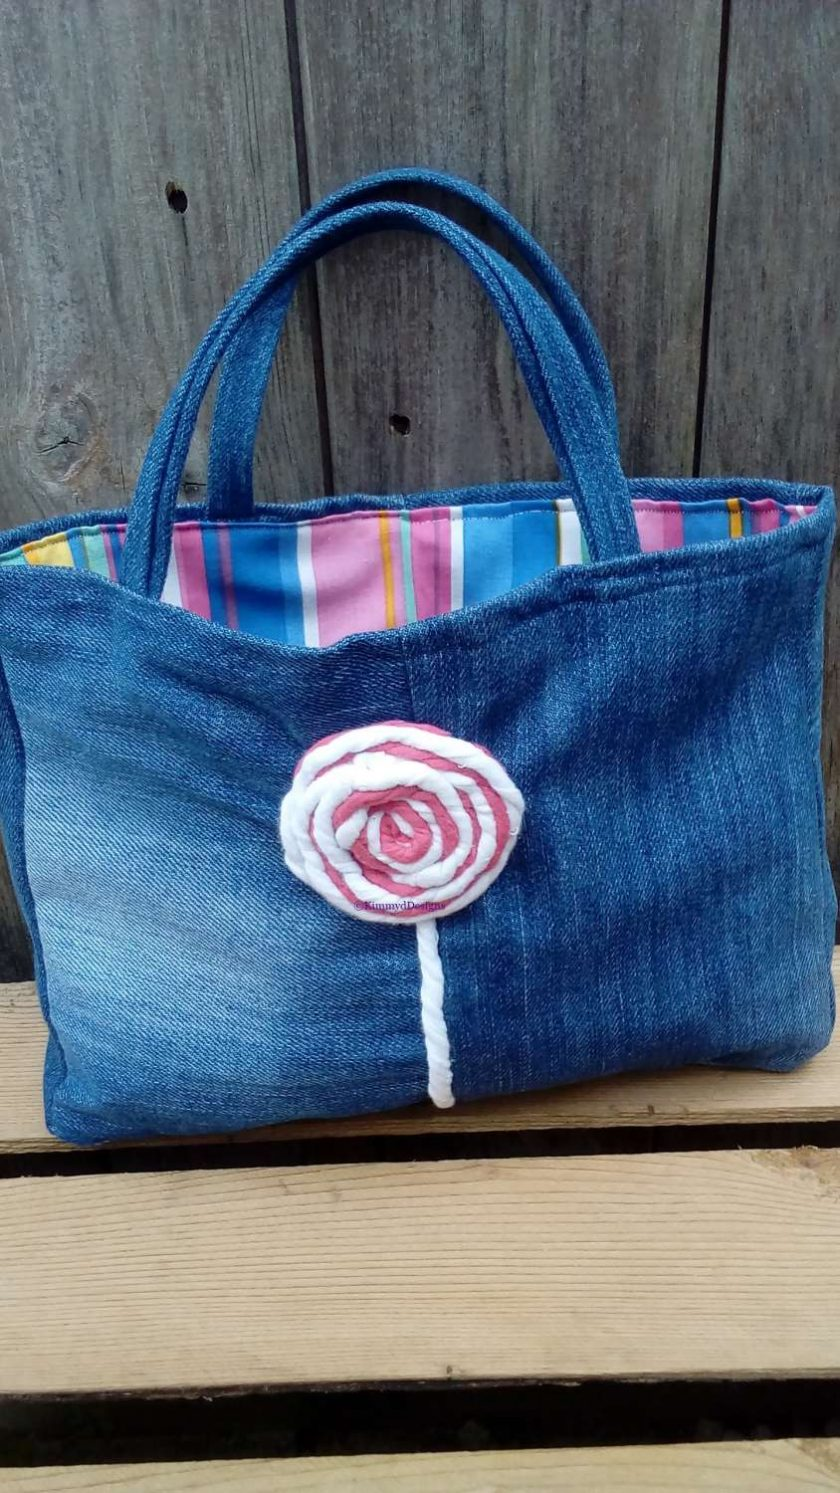 Kids Handbag (from recycled jeans) Lollipop Fully Lined Bag Gift Tote FREE UK POSTAGE 1